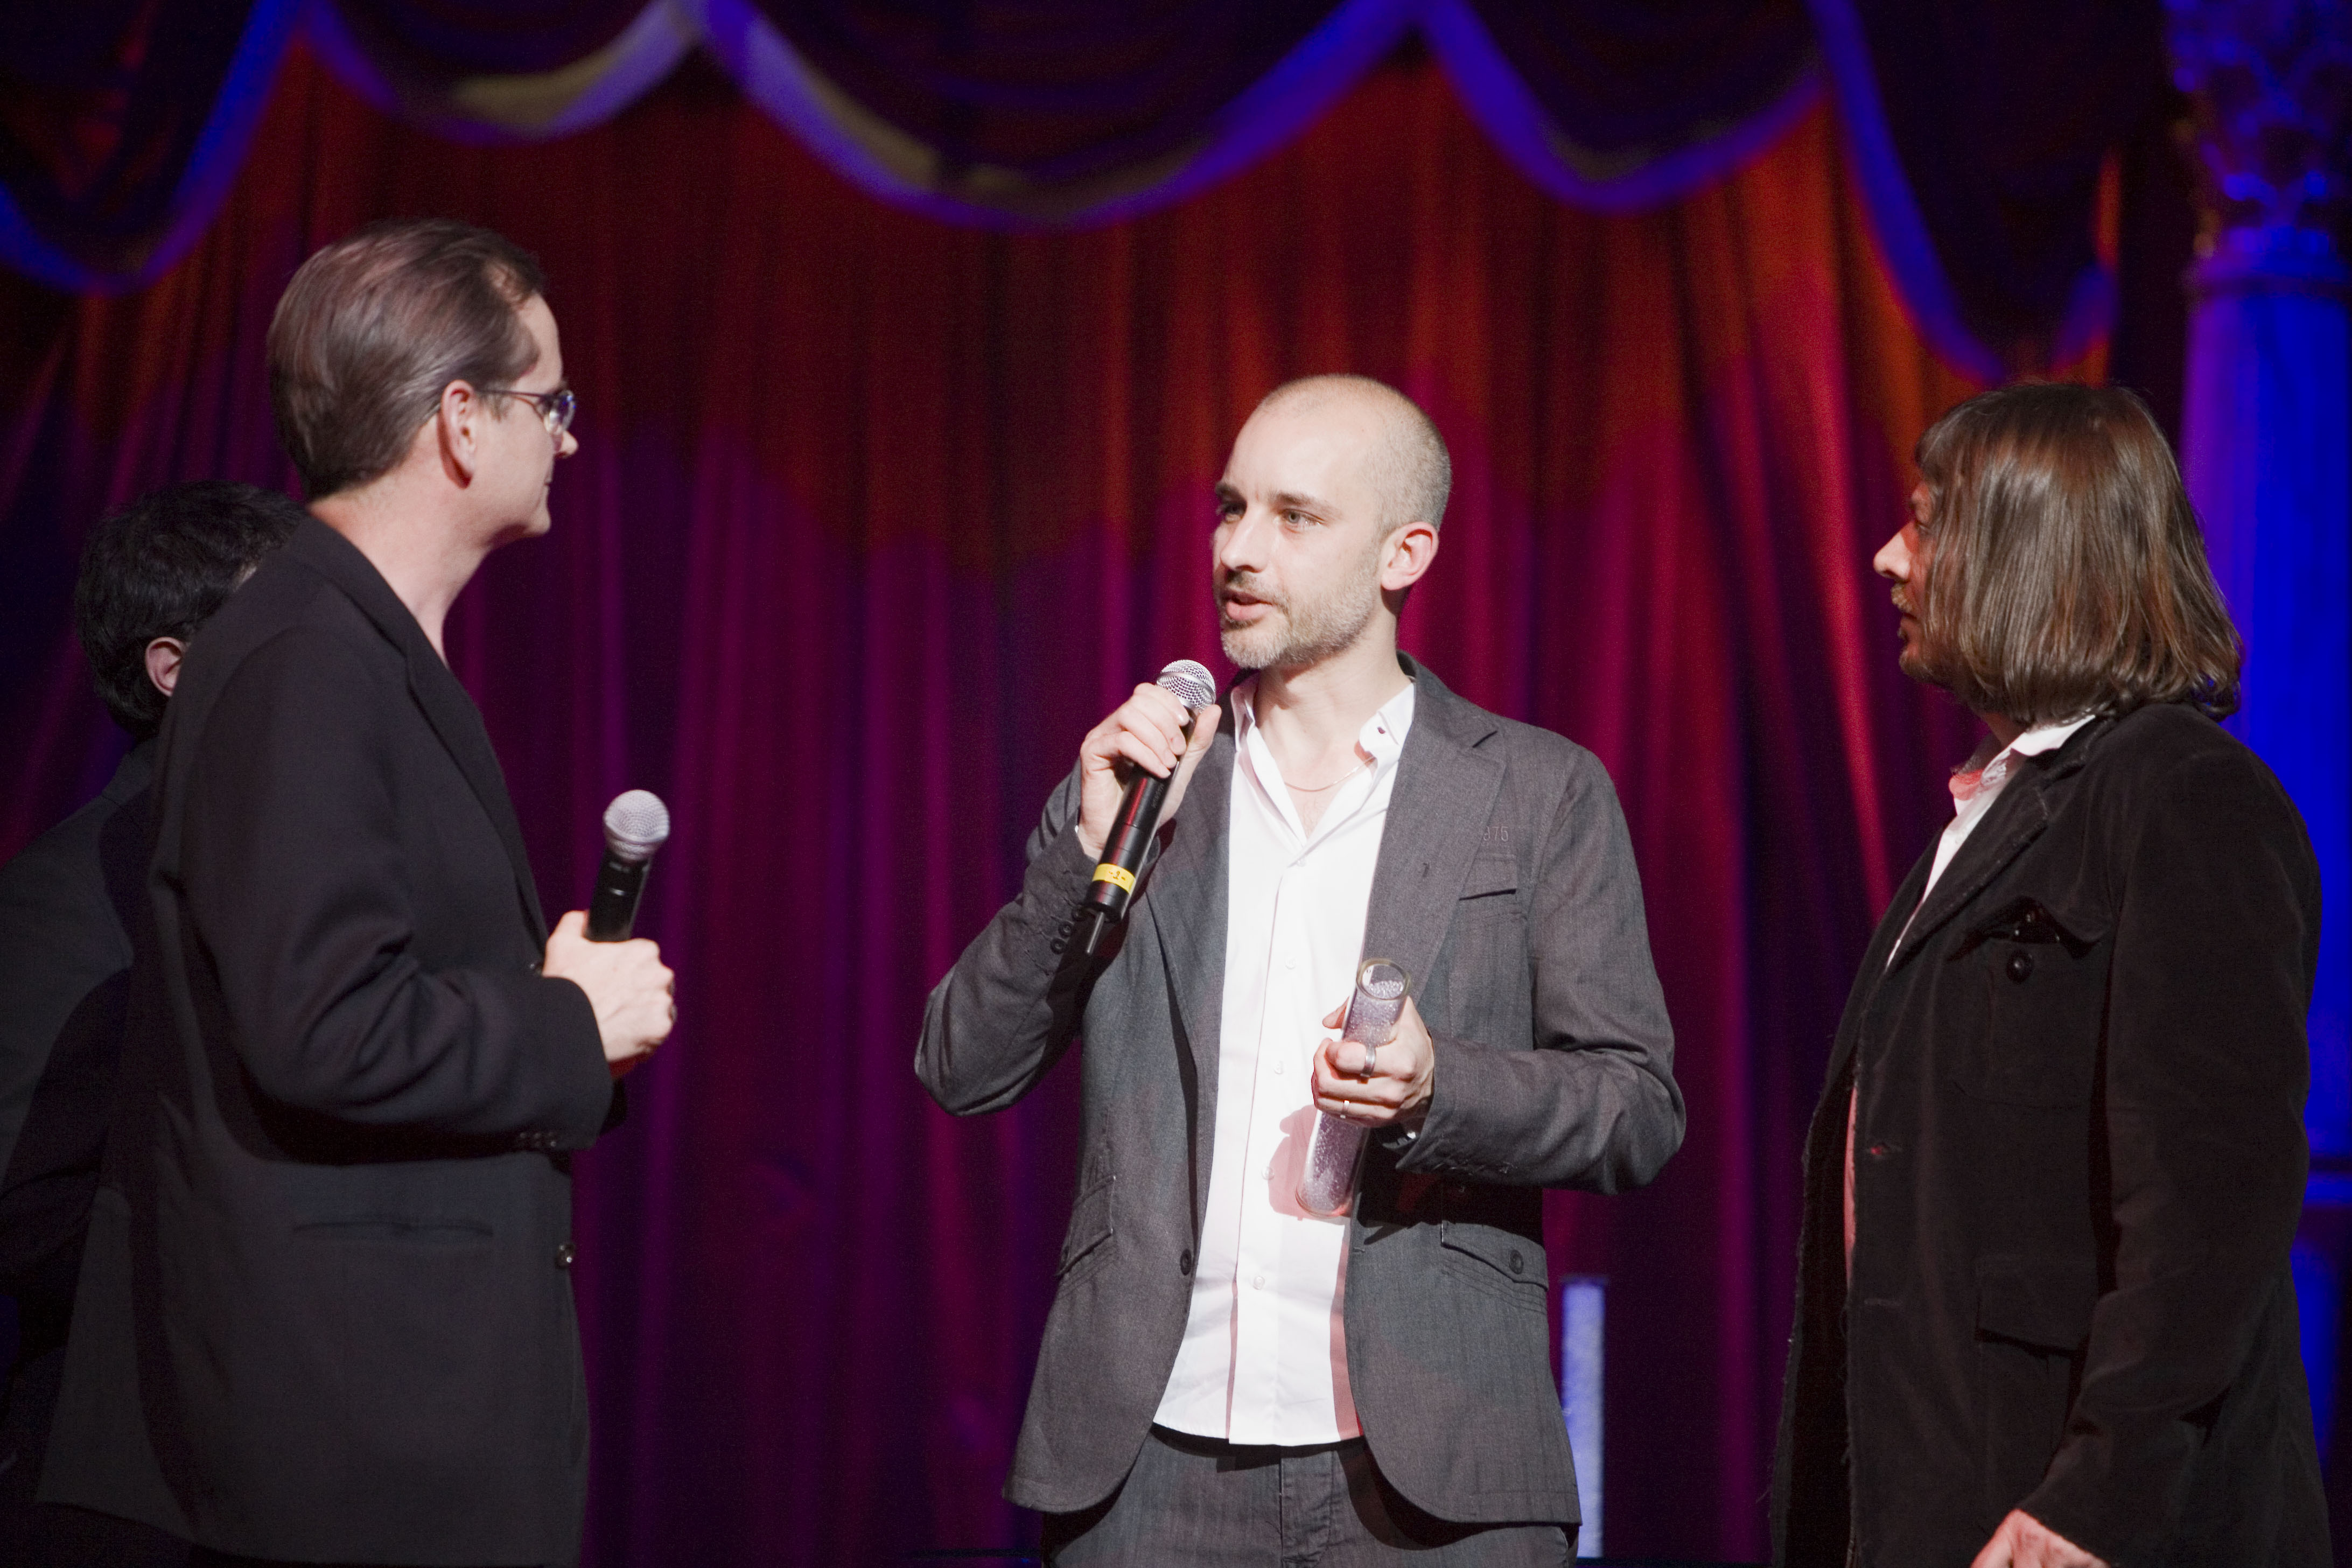 Taylor Deupree presenting Qwartz Award to Lawrence Lessig, with Alexandre Grauer (R)